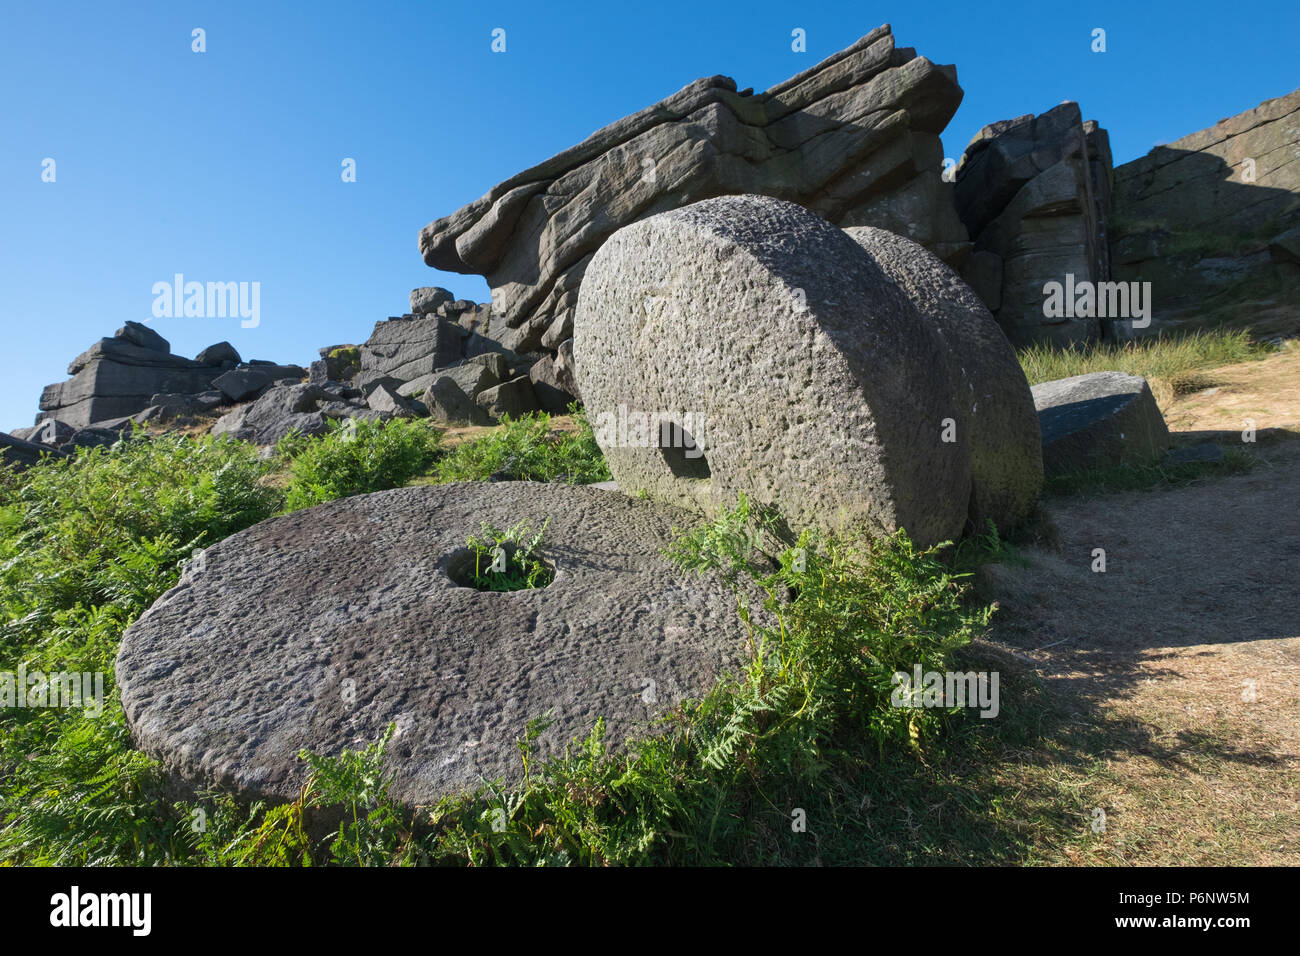 Peak District millstones at Stanage Edge, Derbyshire. - Stock Image